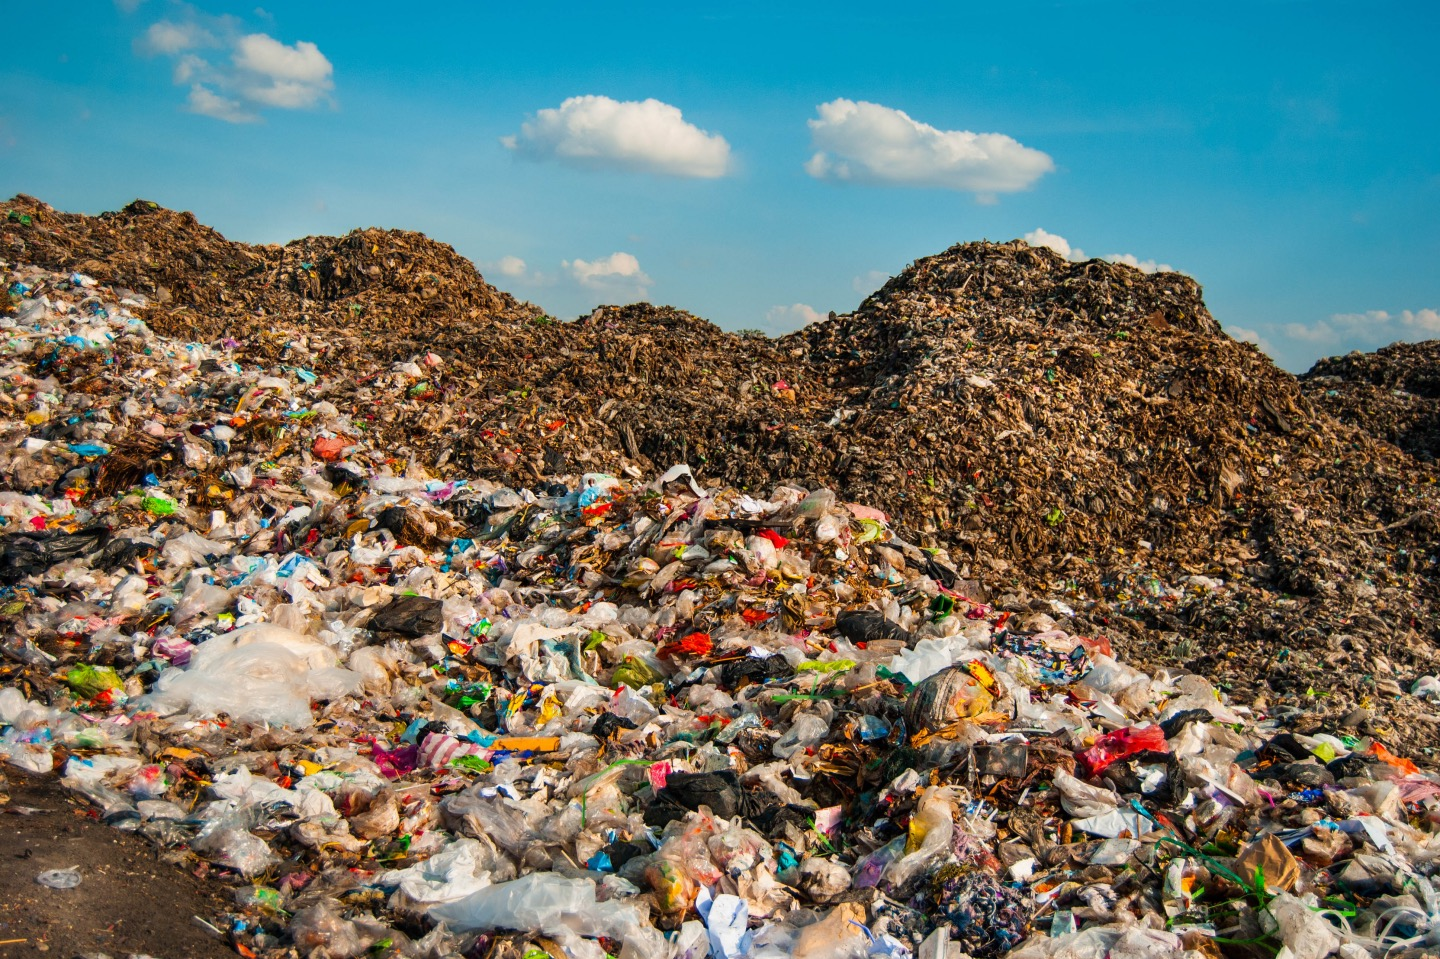 Open dump in Southeast Asia, showing how bad the waste situation is.